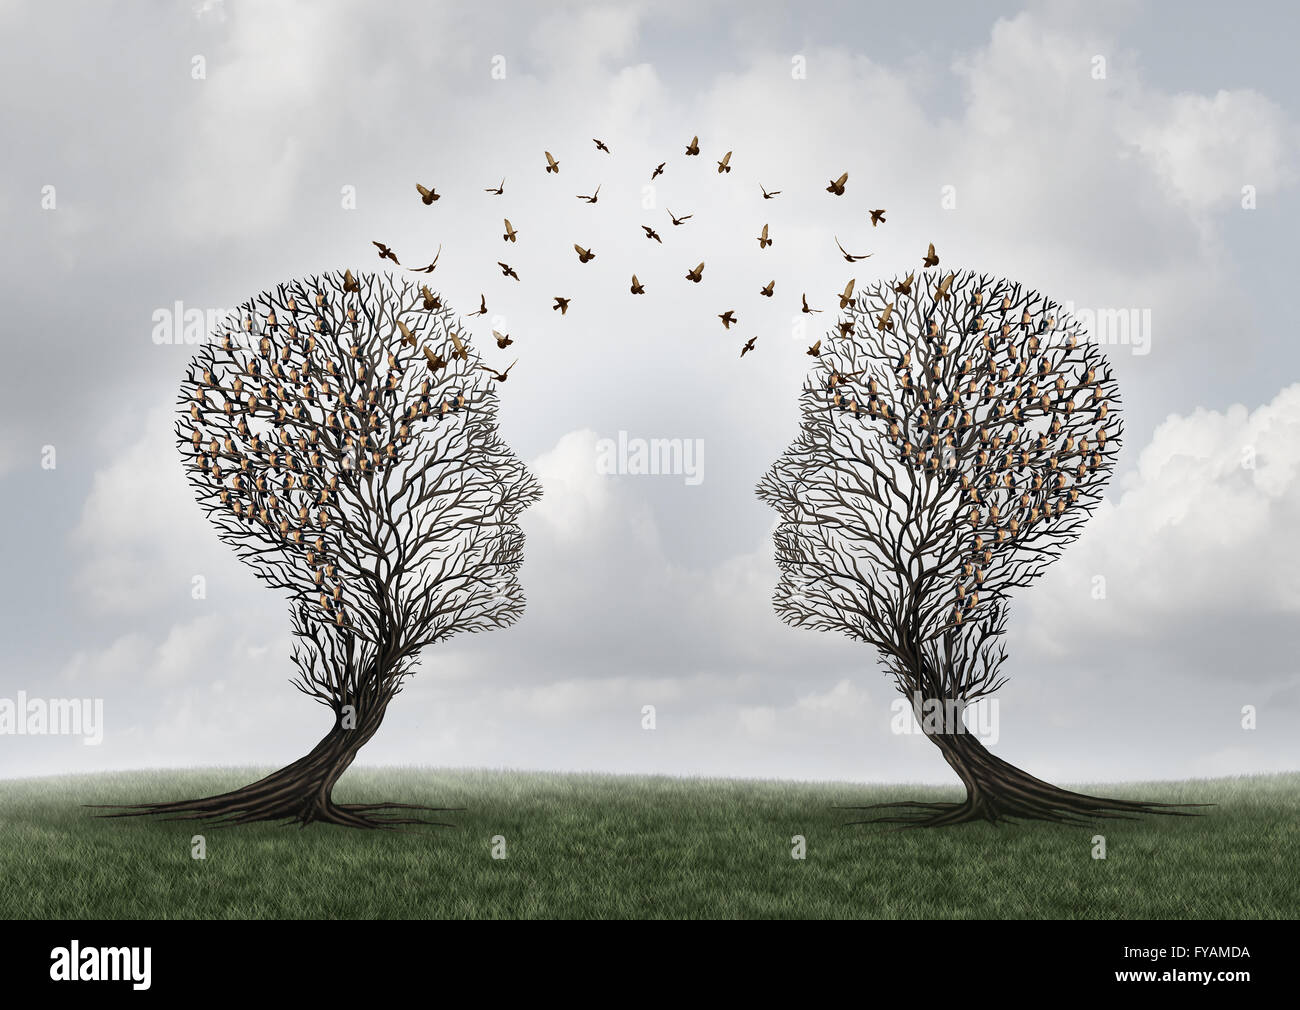 Concept of communication and communicating a message between two head shaped trees with birds perched and flying - Stock Image